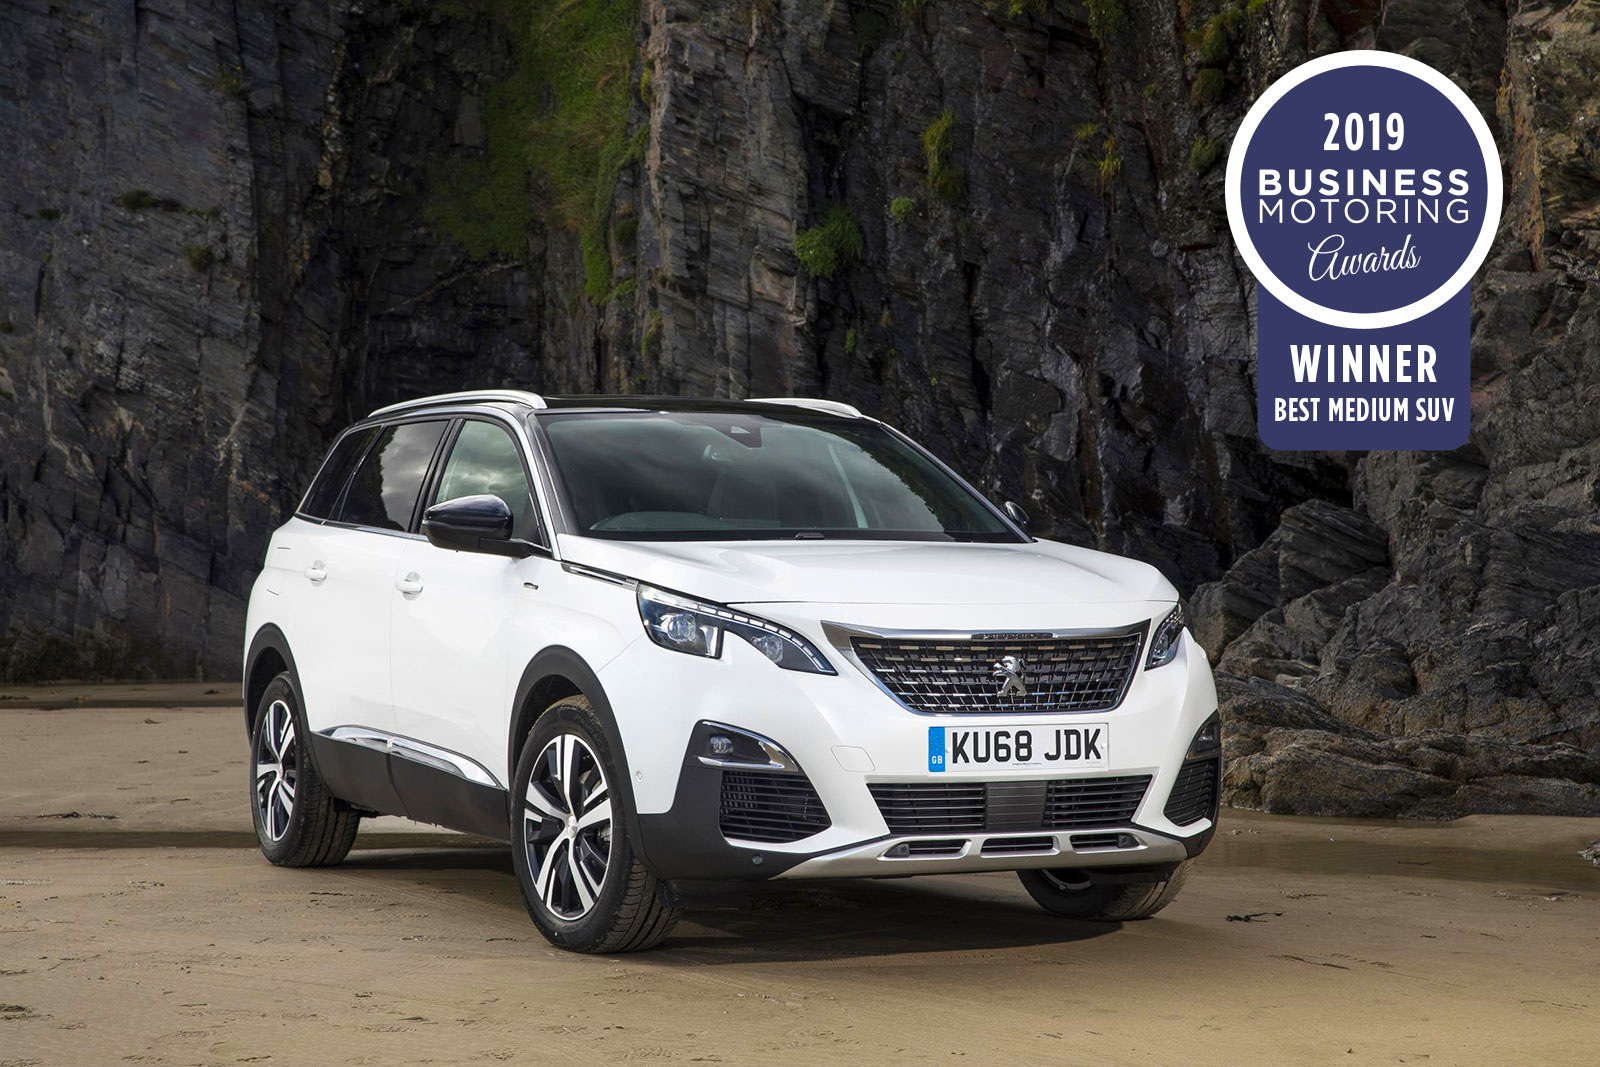 Peugeot 5008 Best medium SUV